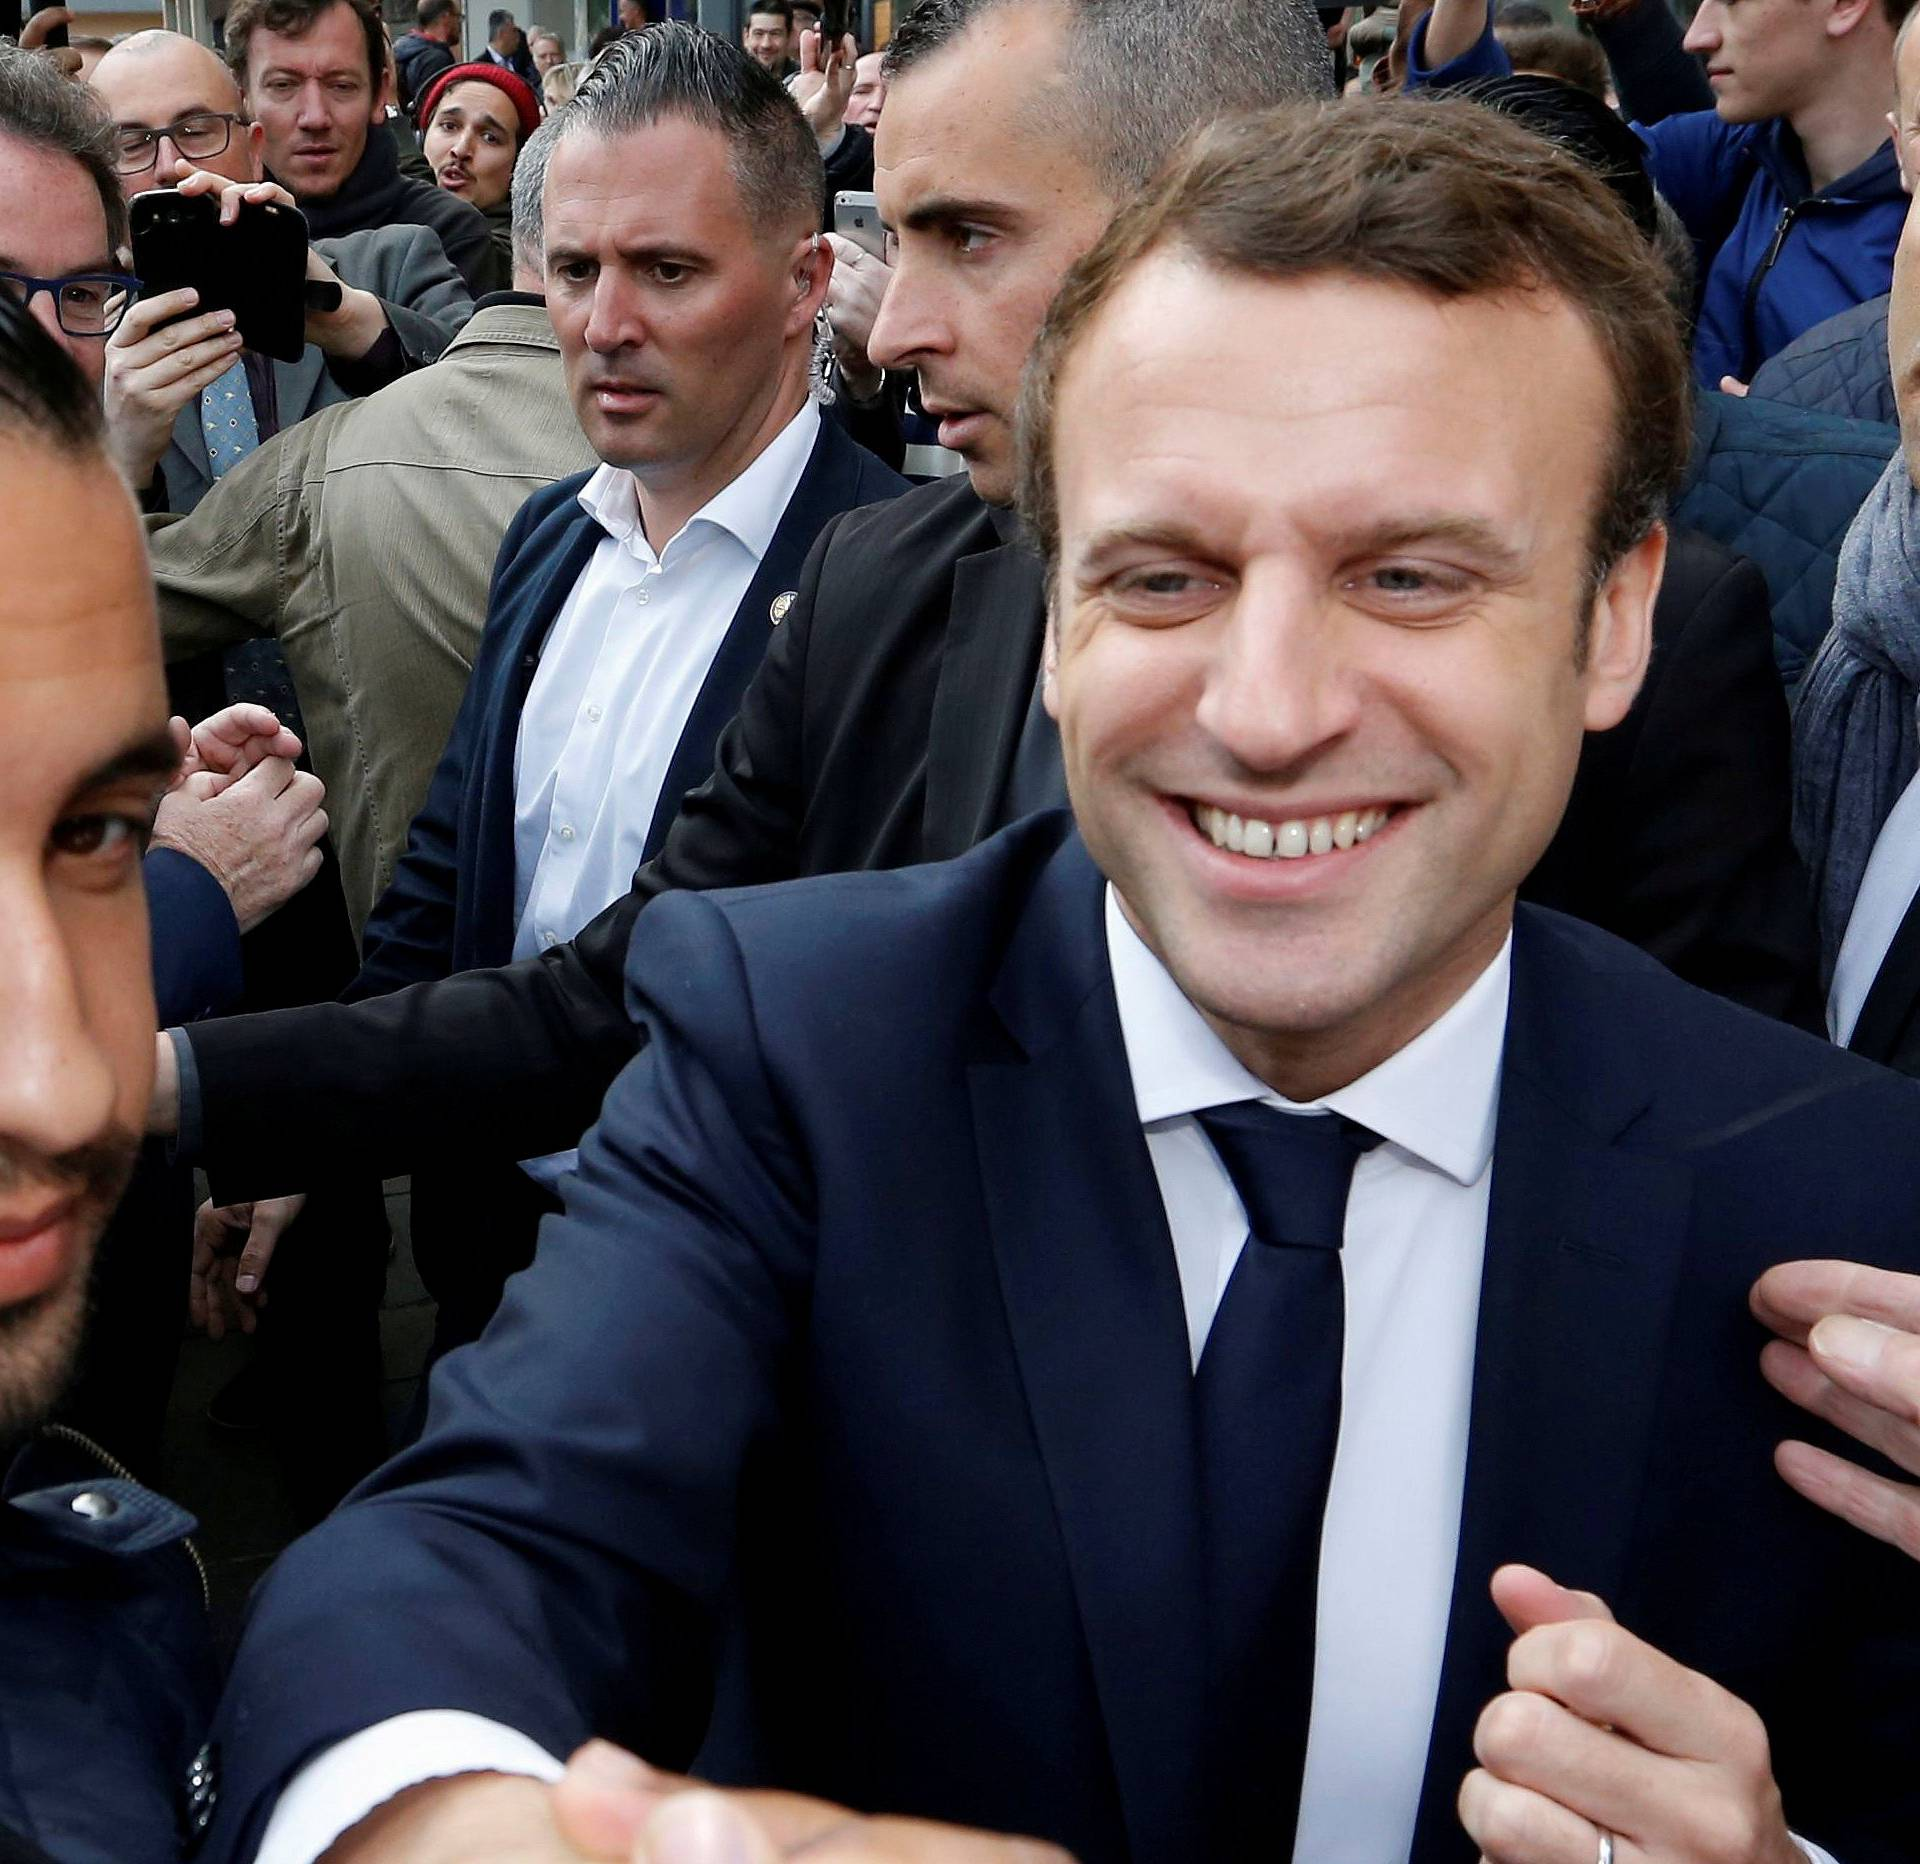 FILE PHOTO: Emmanuel Macron, head of the political movement En Marche !, or Onwards !, and candidate for the 2017 presidential election, flanked by Alexandre Benalla, head of security, attends a campaign visit in Rodez